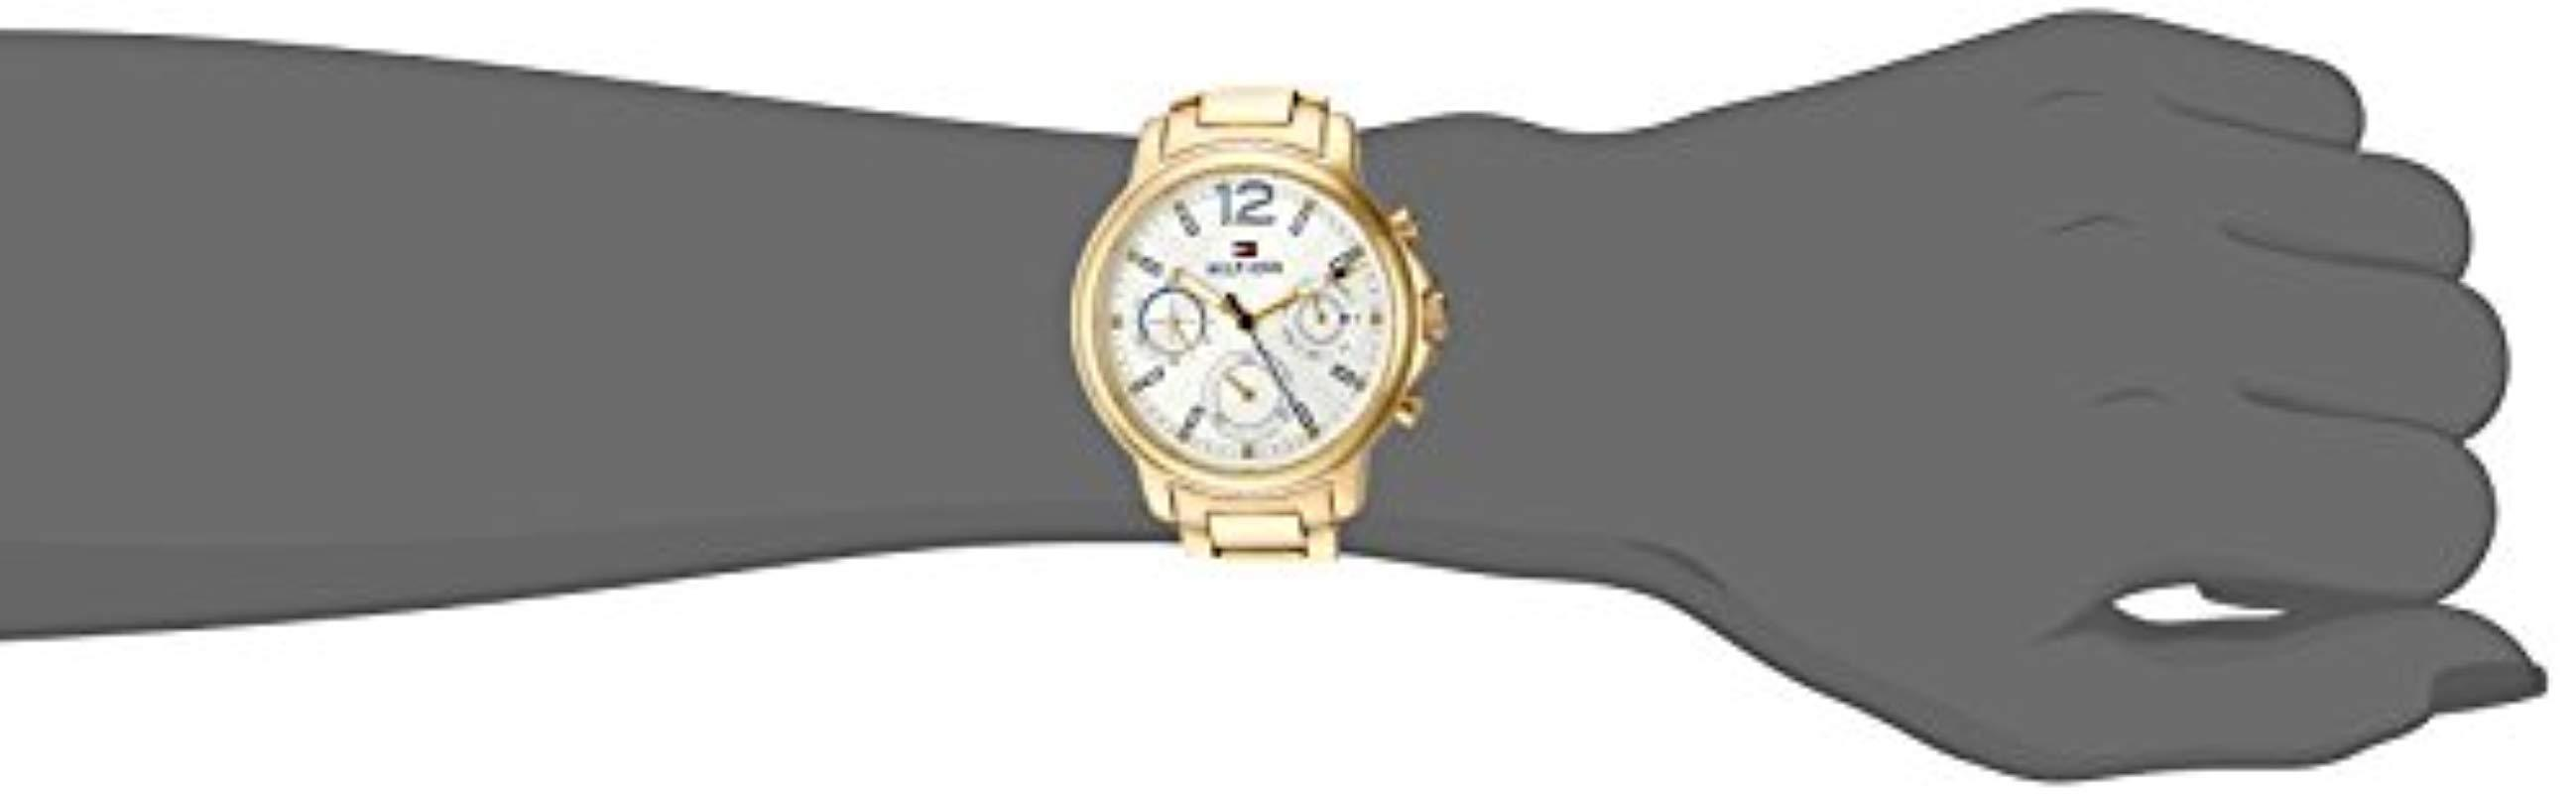 78d690b3 Tommy Hilfiger - Metallic 'claudia' Quartz Stainless Steel Casual Watch,  Color:gold. View fullscreen